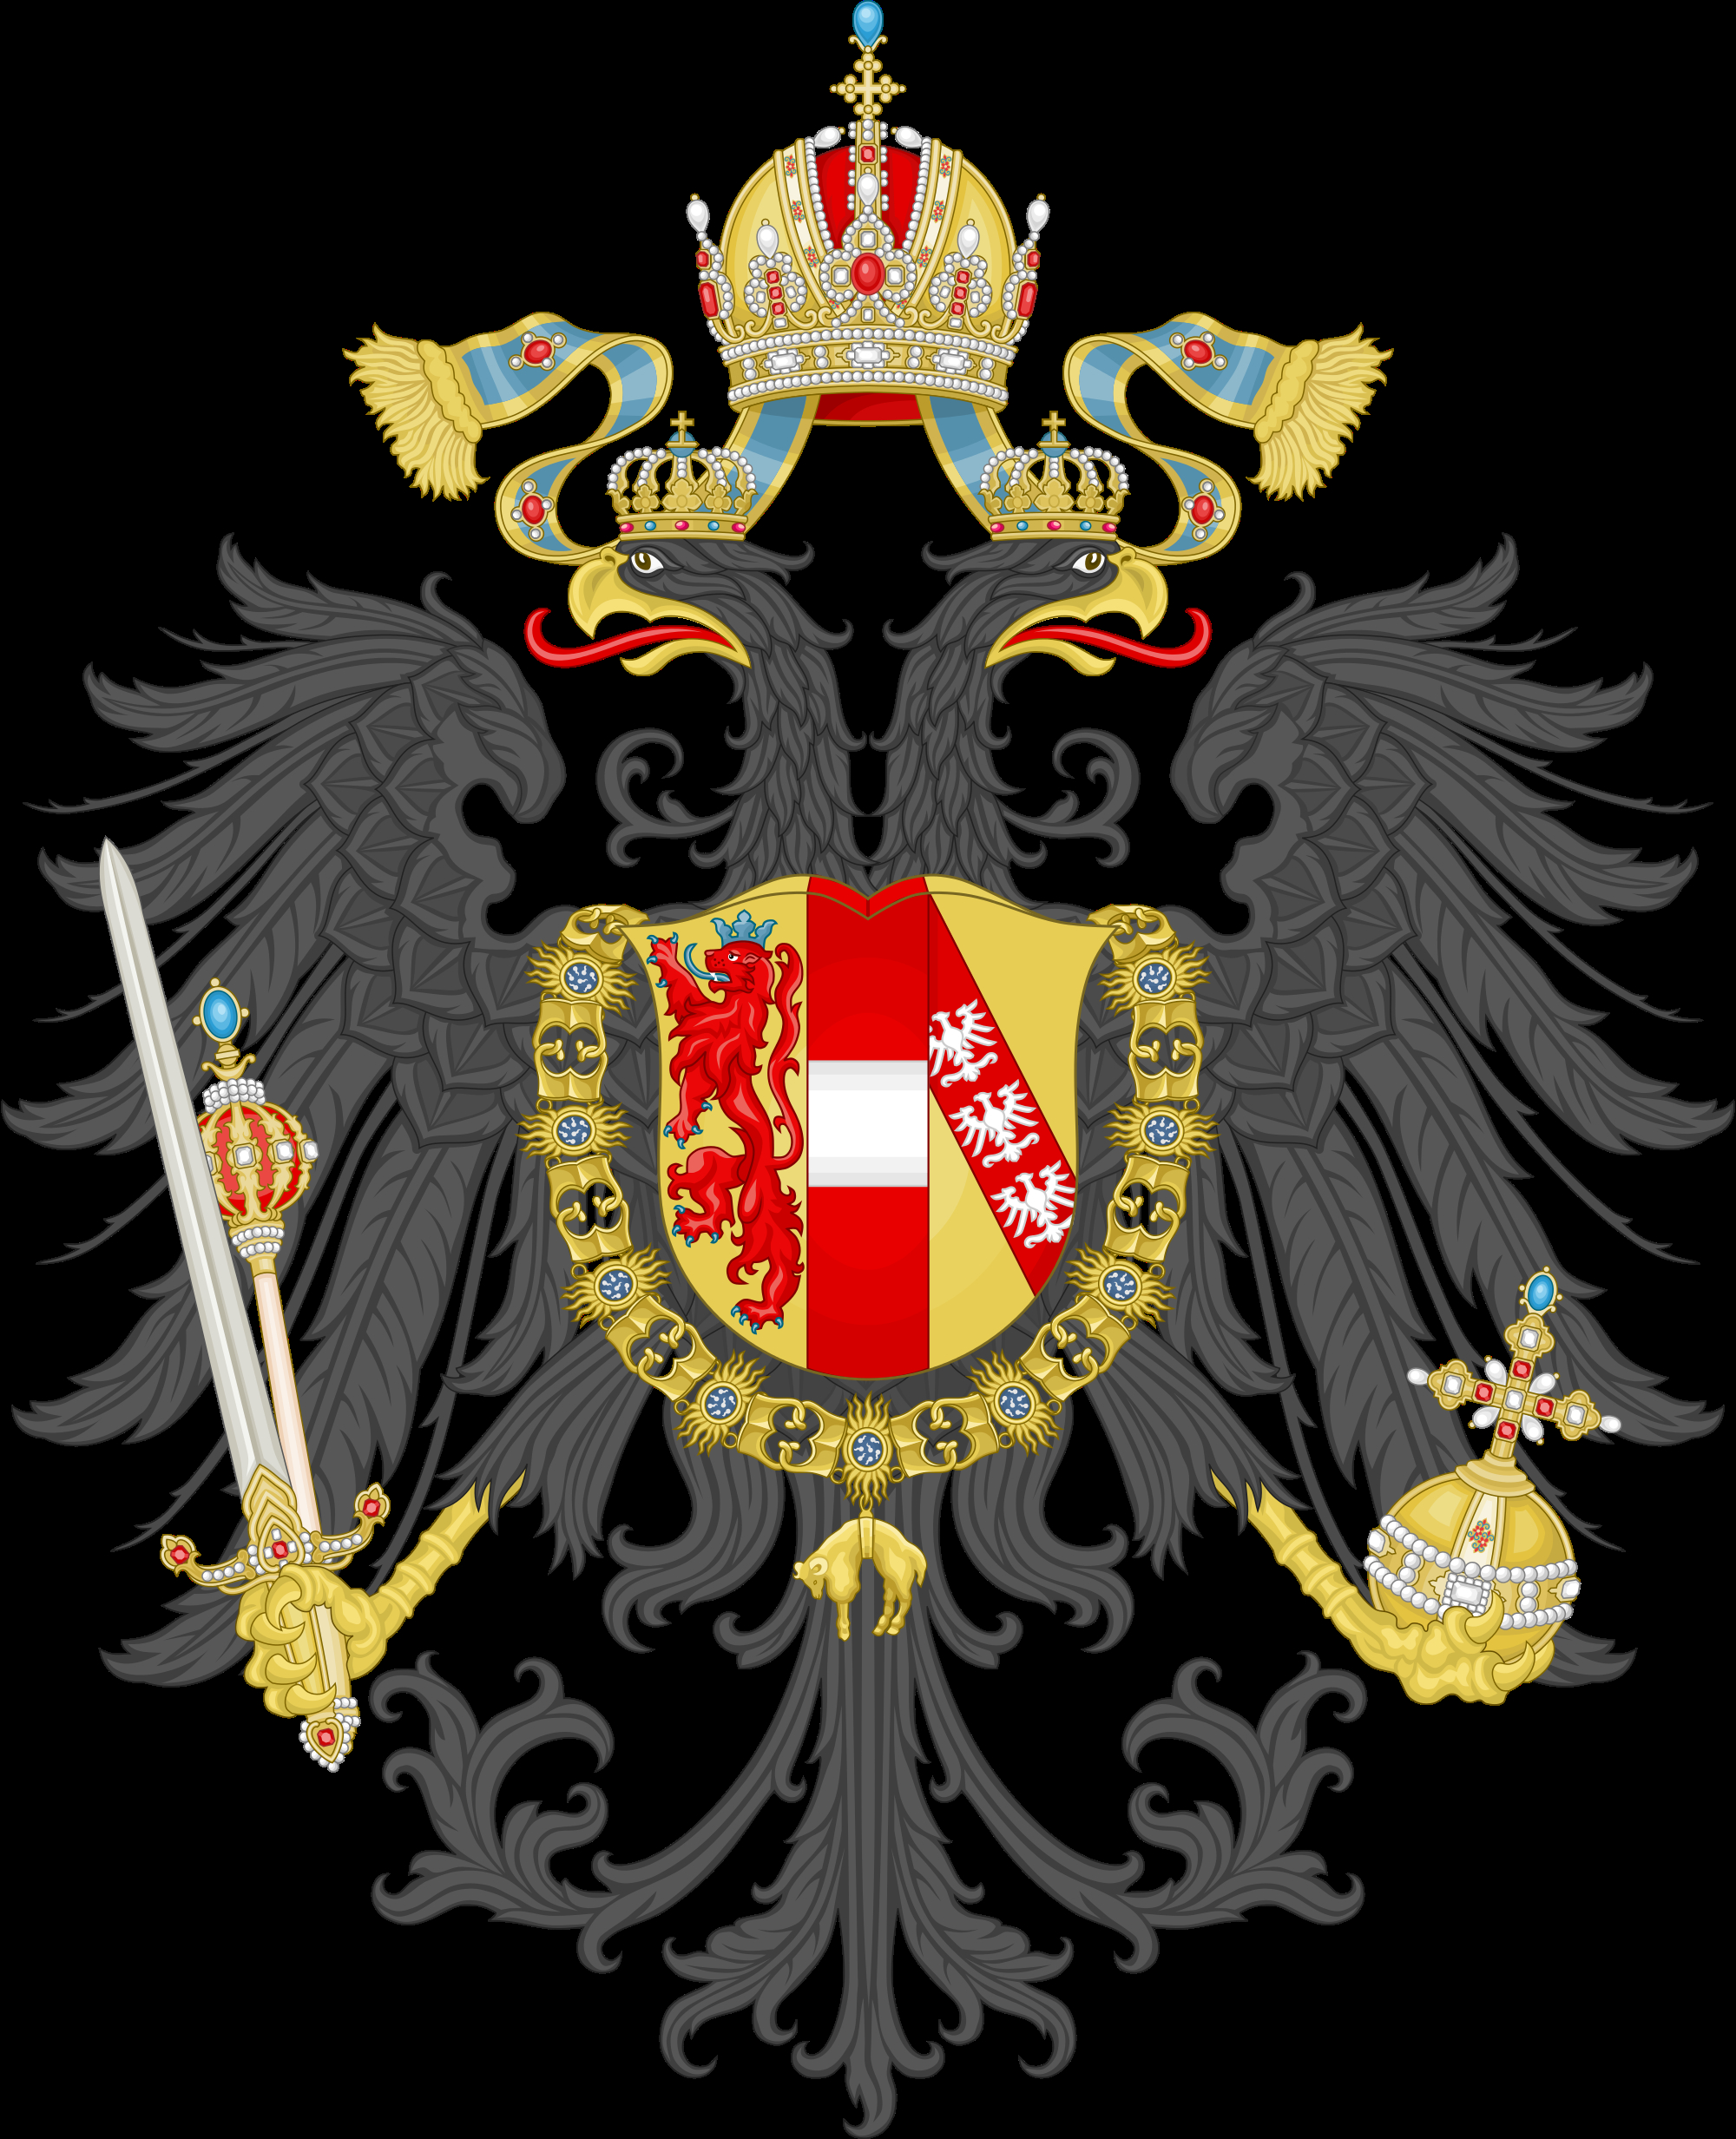 Arms Of The Empire Of Austria 1815 Powerful Germanaustrian regarding measurements 2000 X 2464